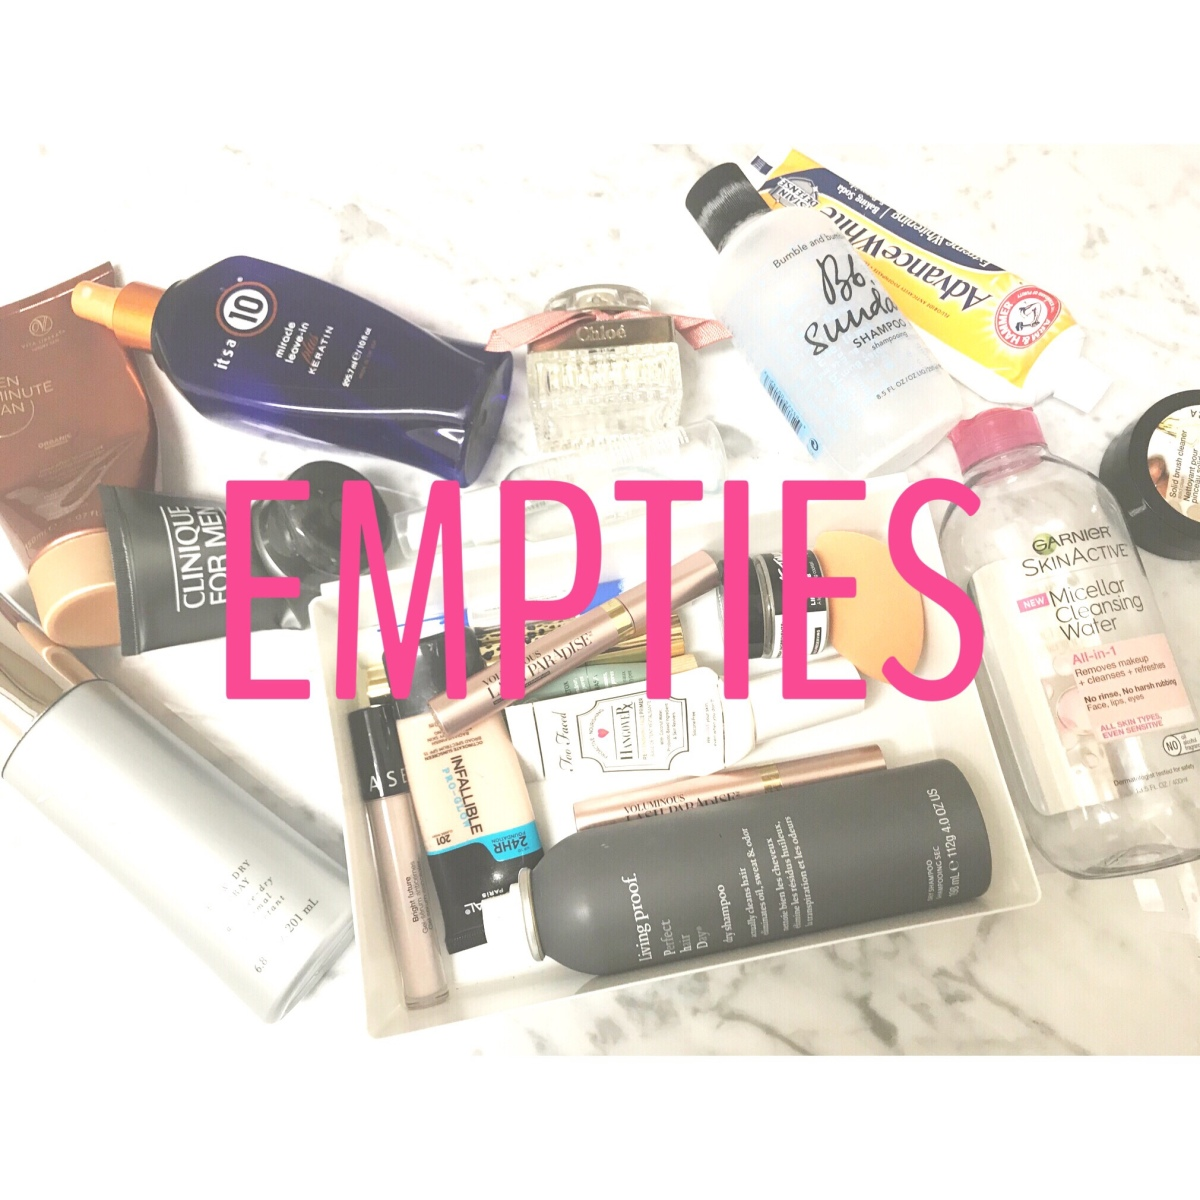 END OF YEAR Empties | END OF NO-BUY